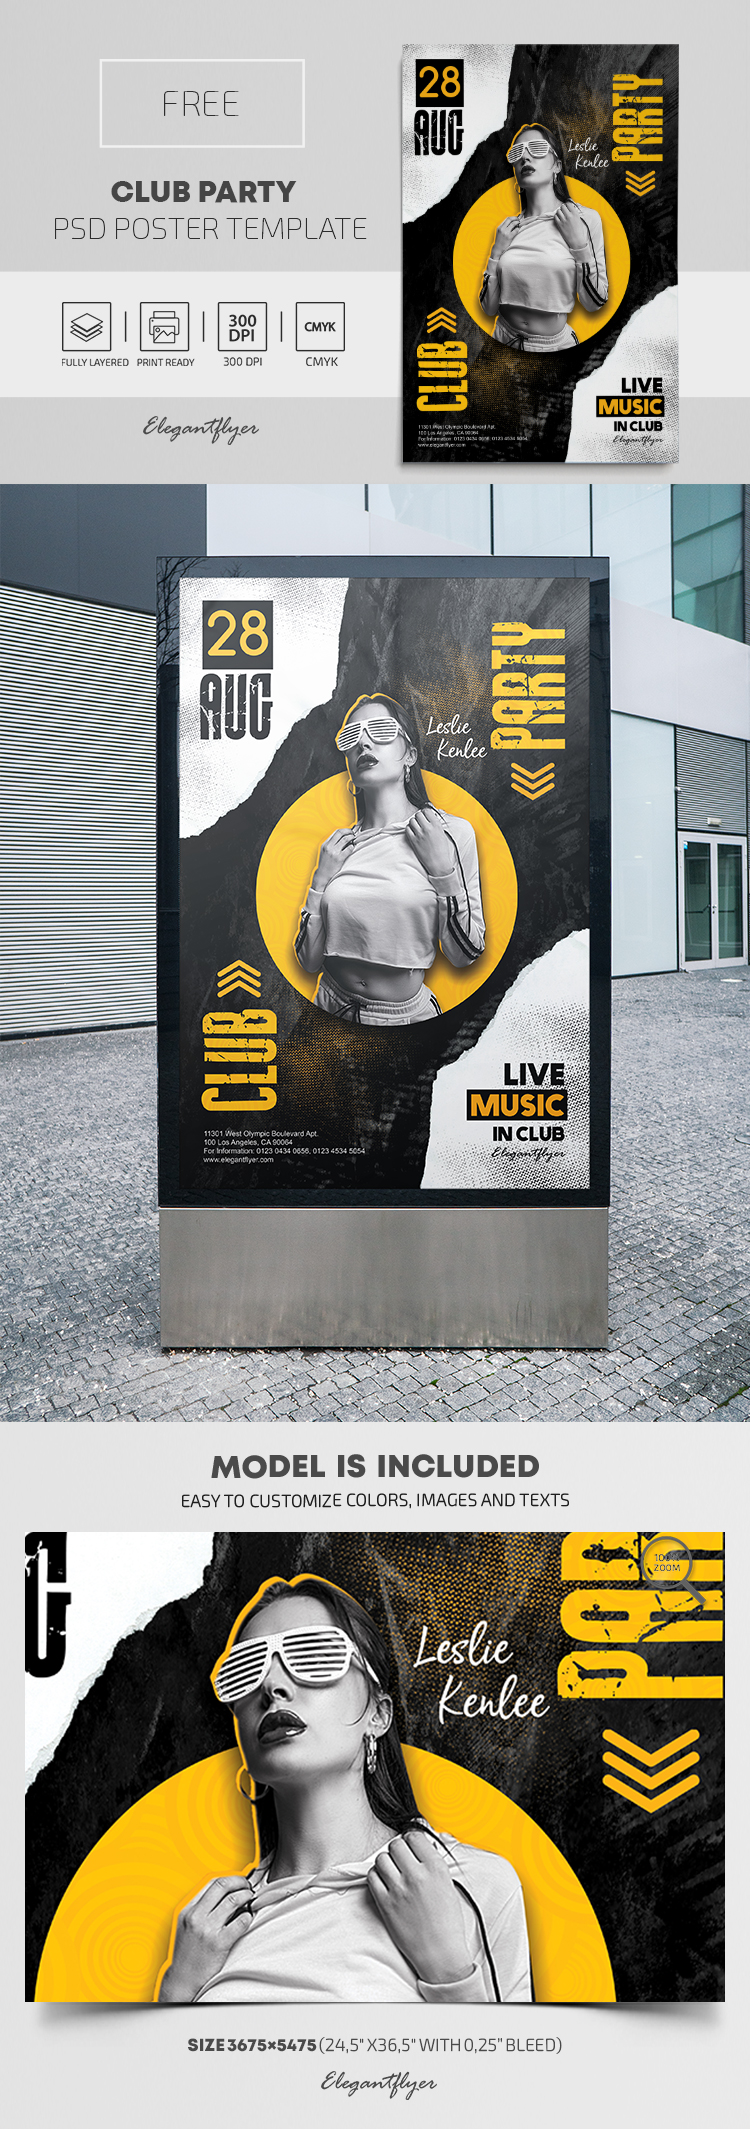 Club Party – Free PSD Poster Template